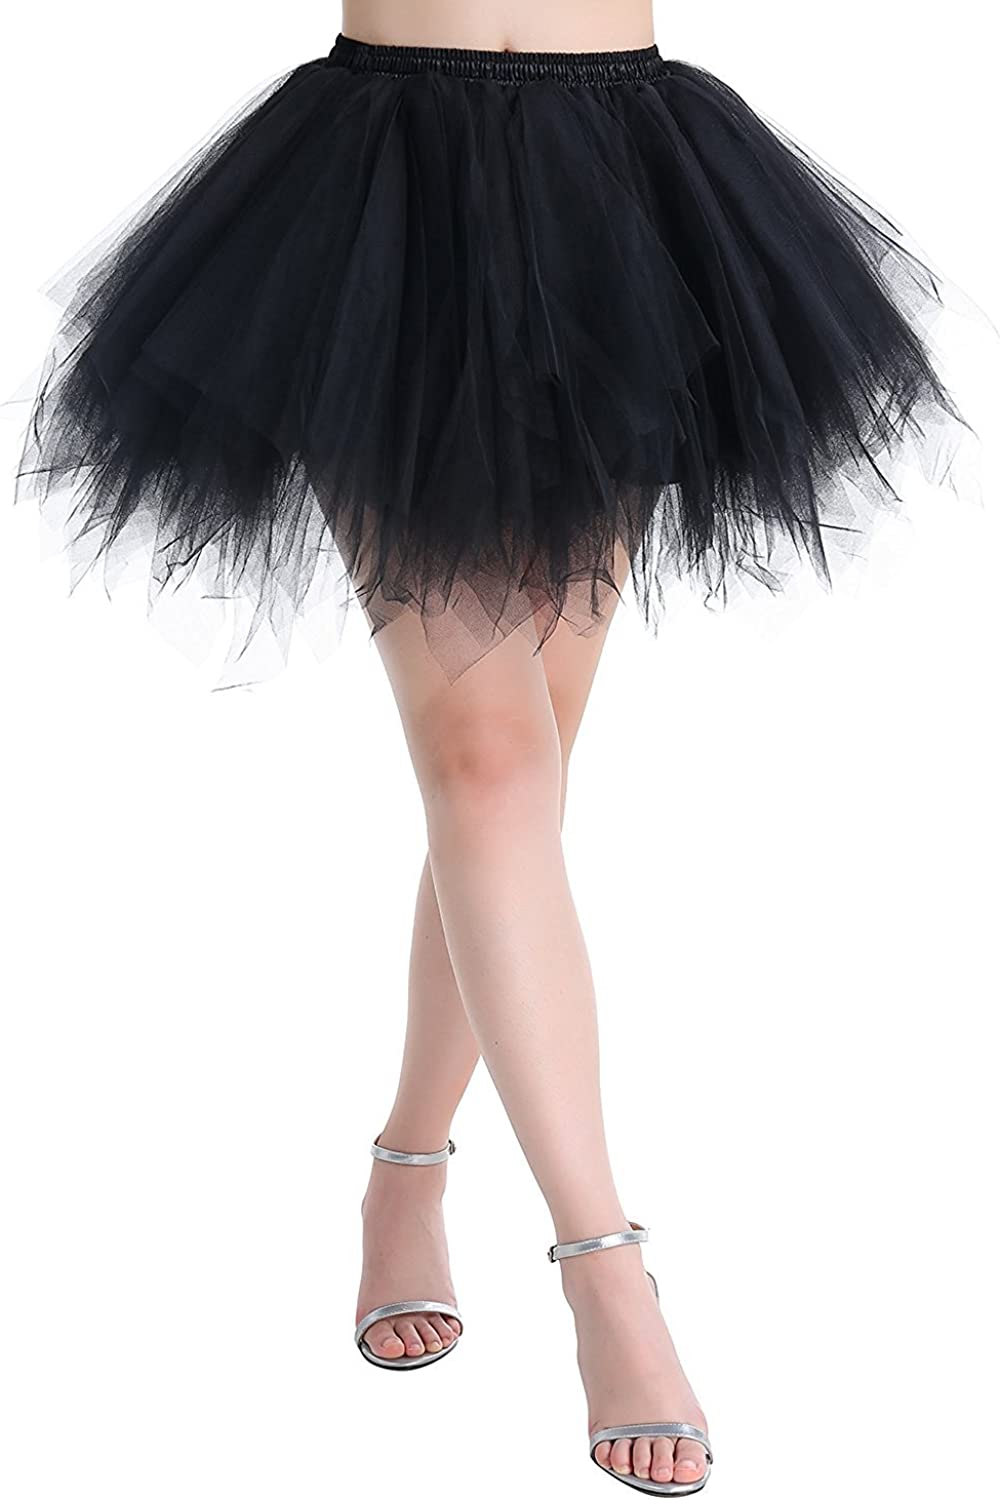 Women 80s Tutu Skirt Layered Tulle Petticoat Halloween Tutu Dance Skirt 18 Colors